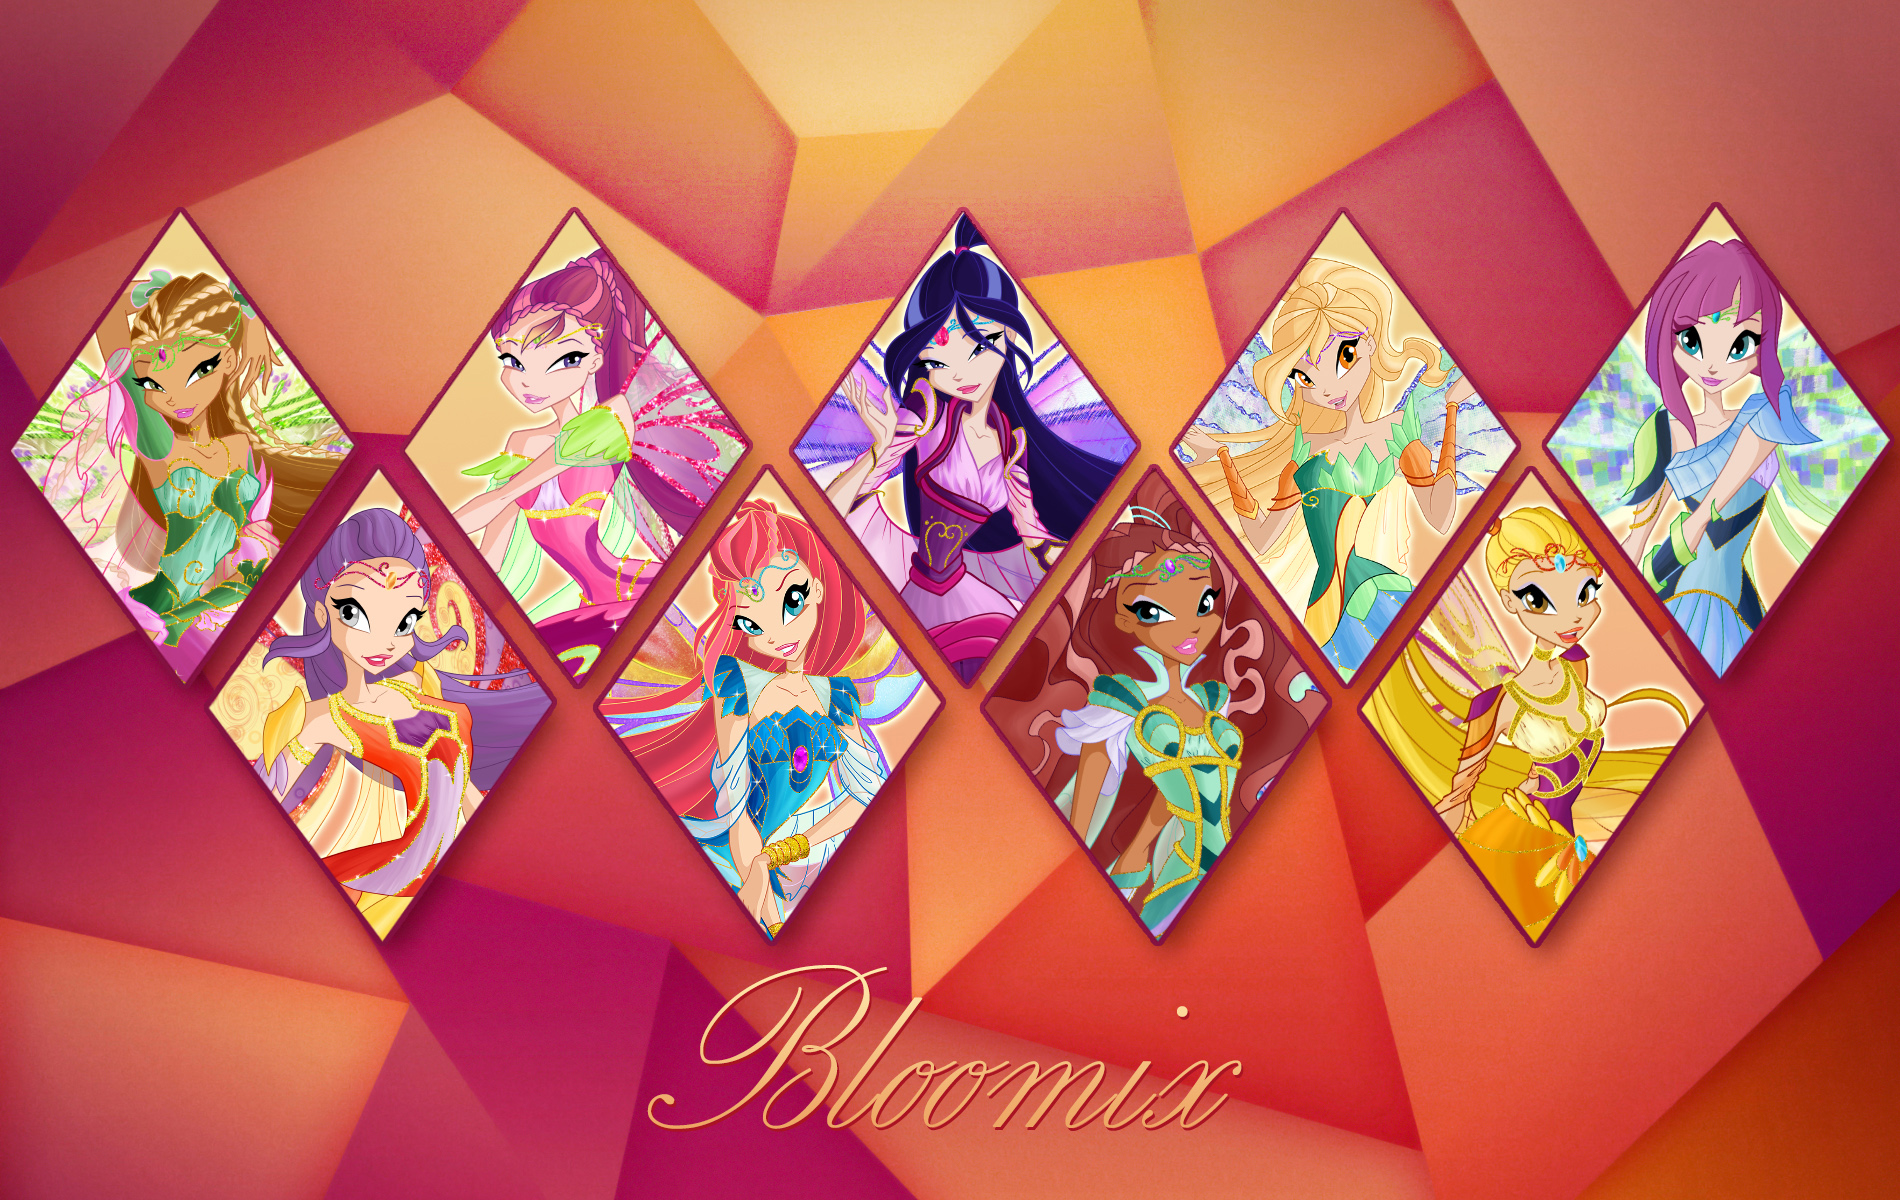 The Winx Club Images Bloomix Fairies HD Wallpaper And